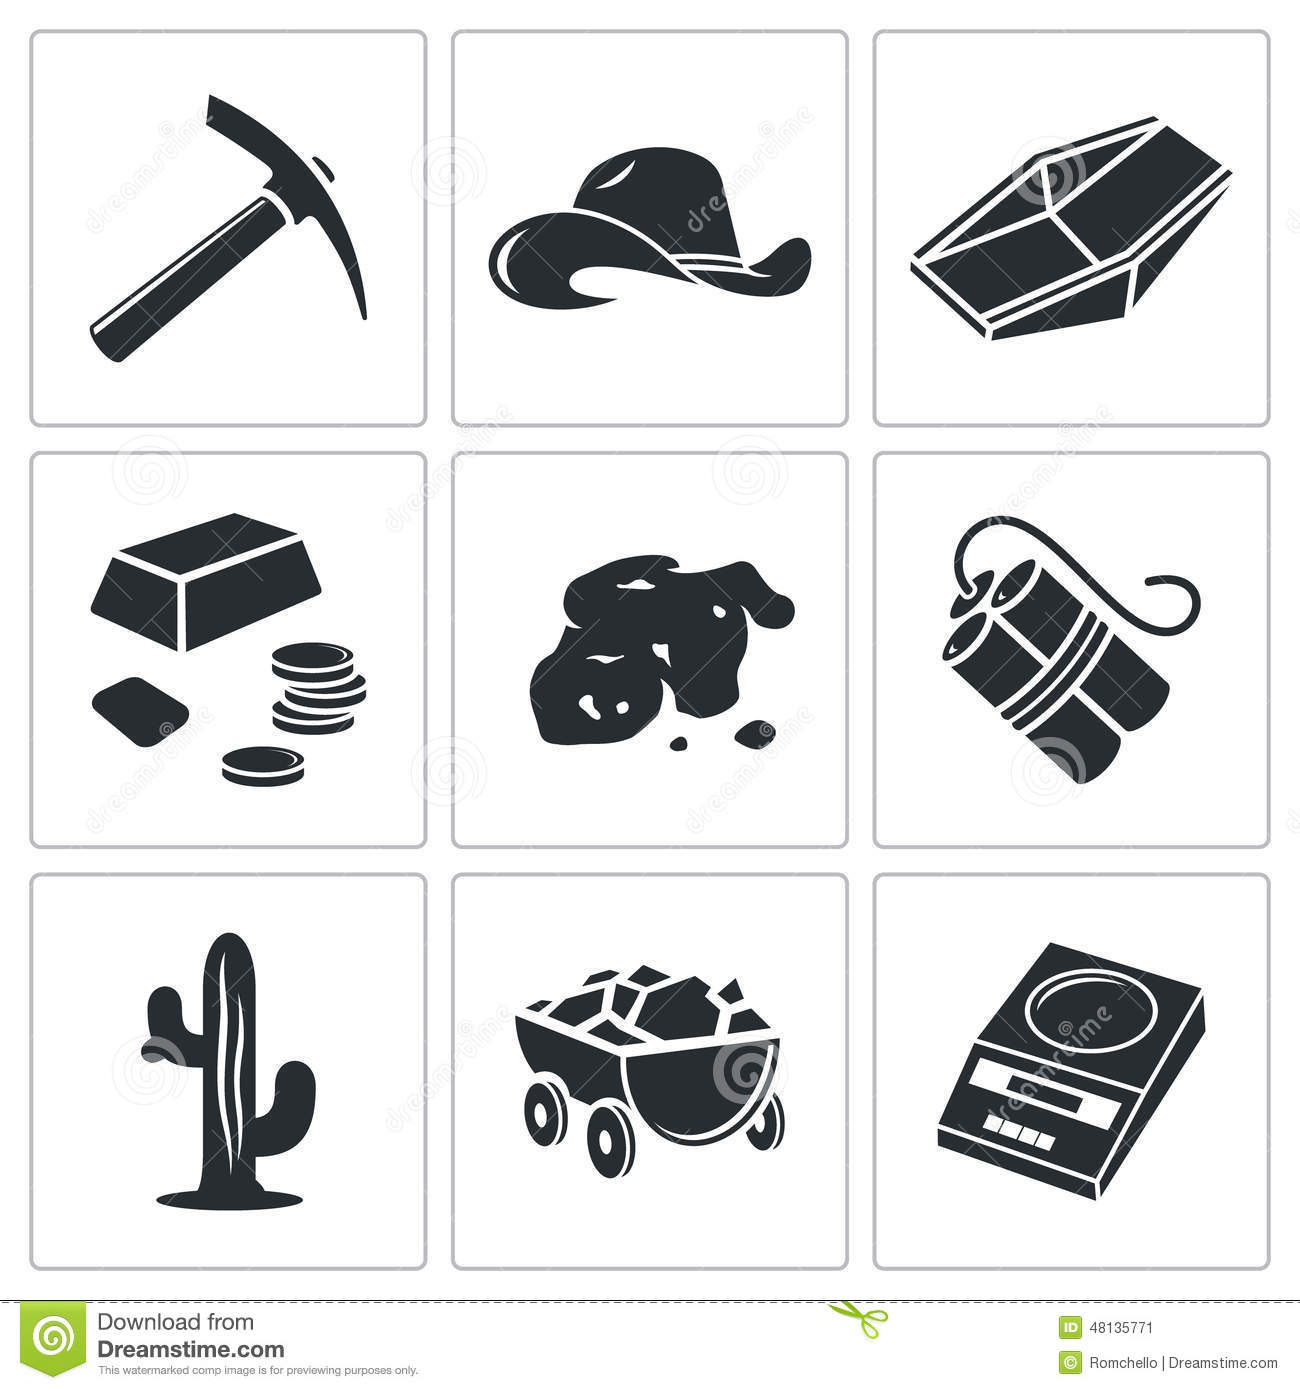 ... mining Vector Isolated Flat Icons collection on a white background